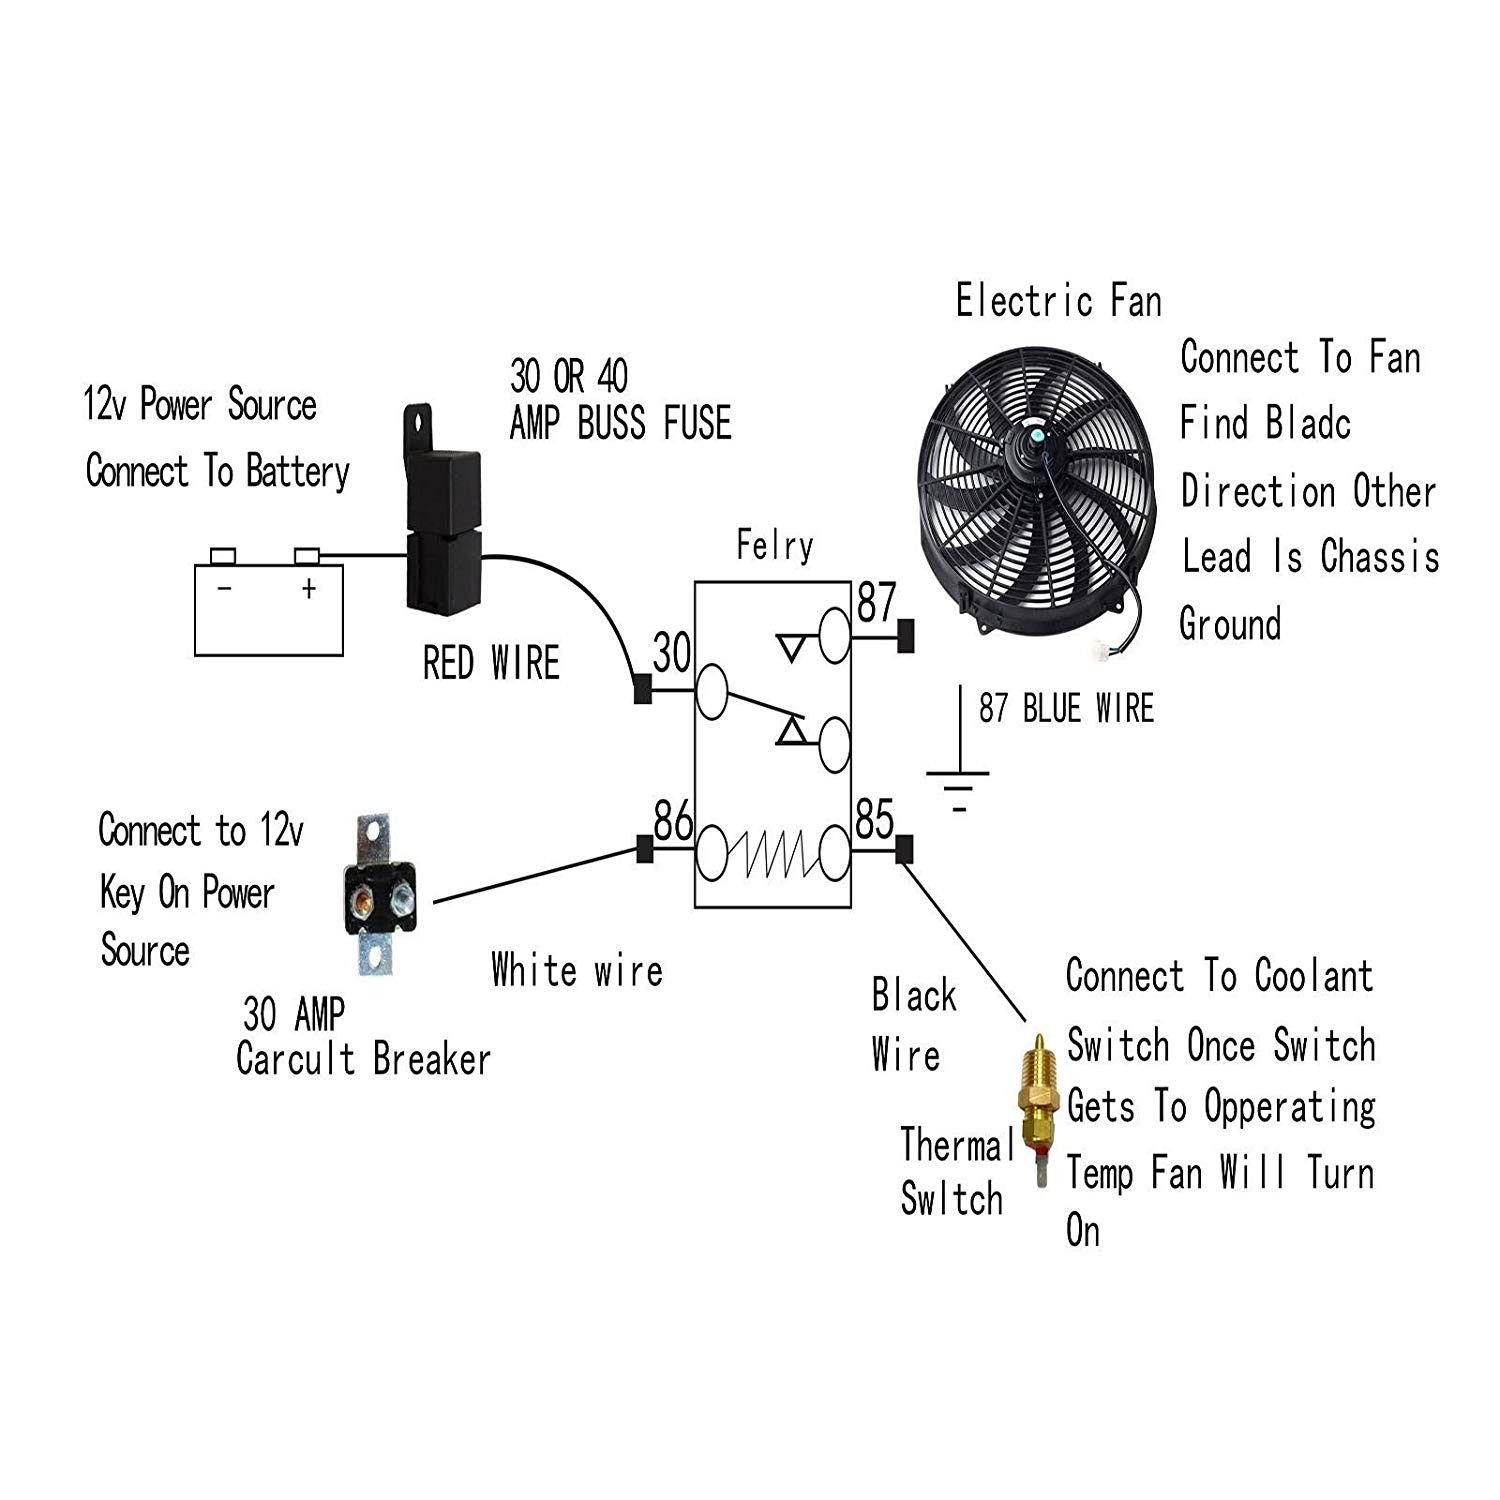 Unique Wiring Diagram For Electric Fan Diagram